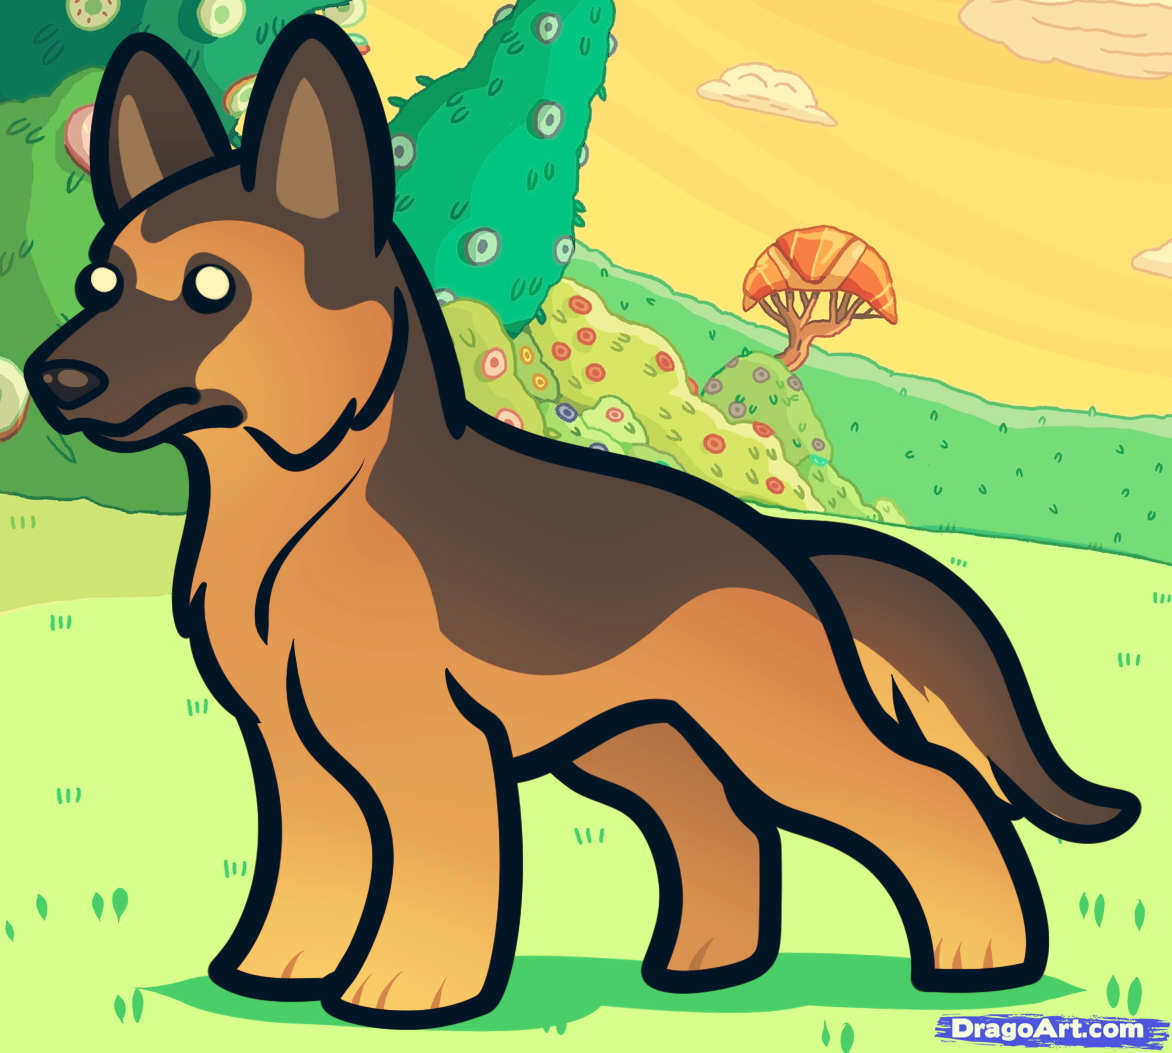 24 Best Images About Dogs To Draw On Pinterest Shapes For Kids, German  Shepherds And